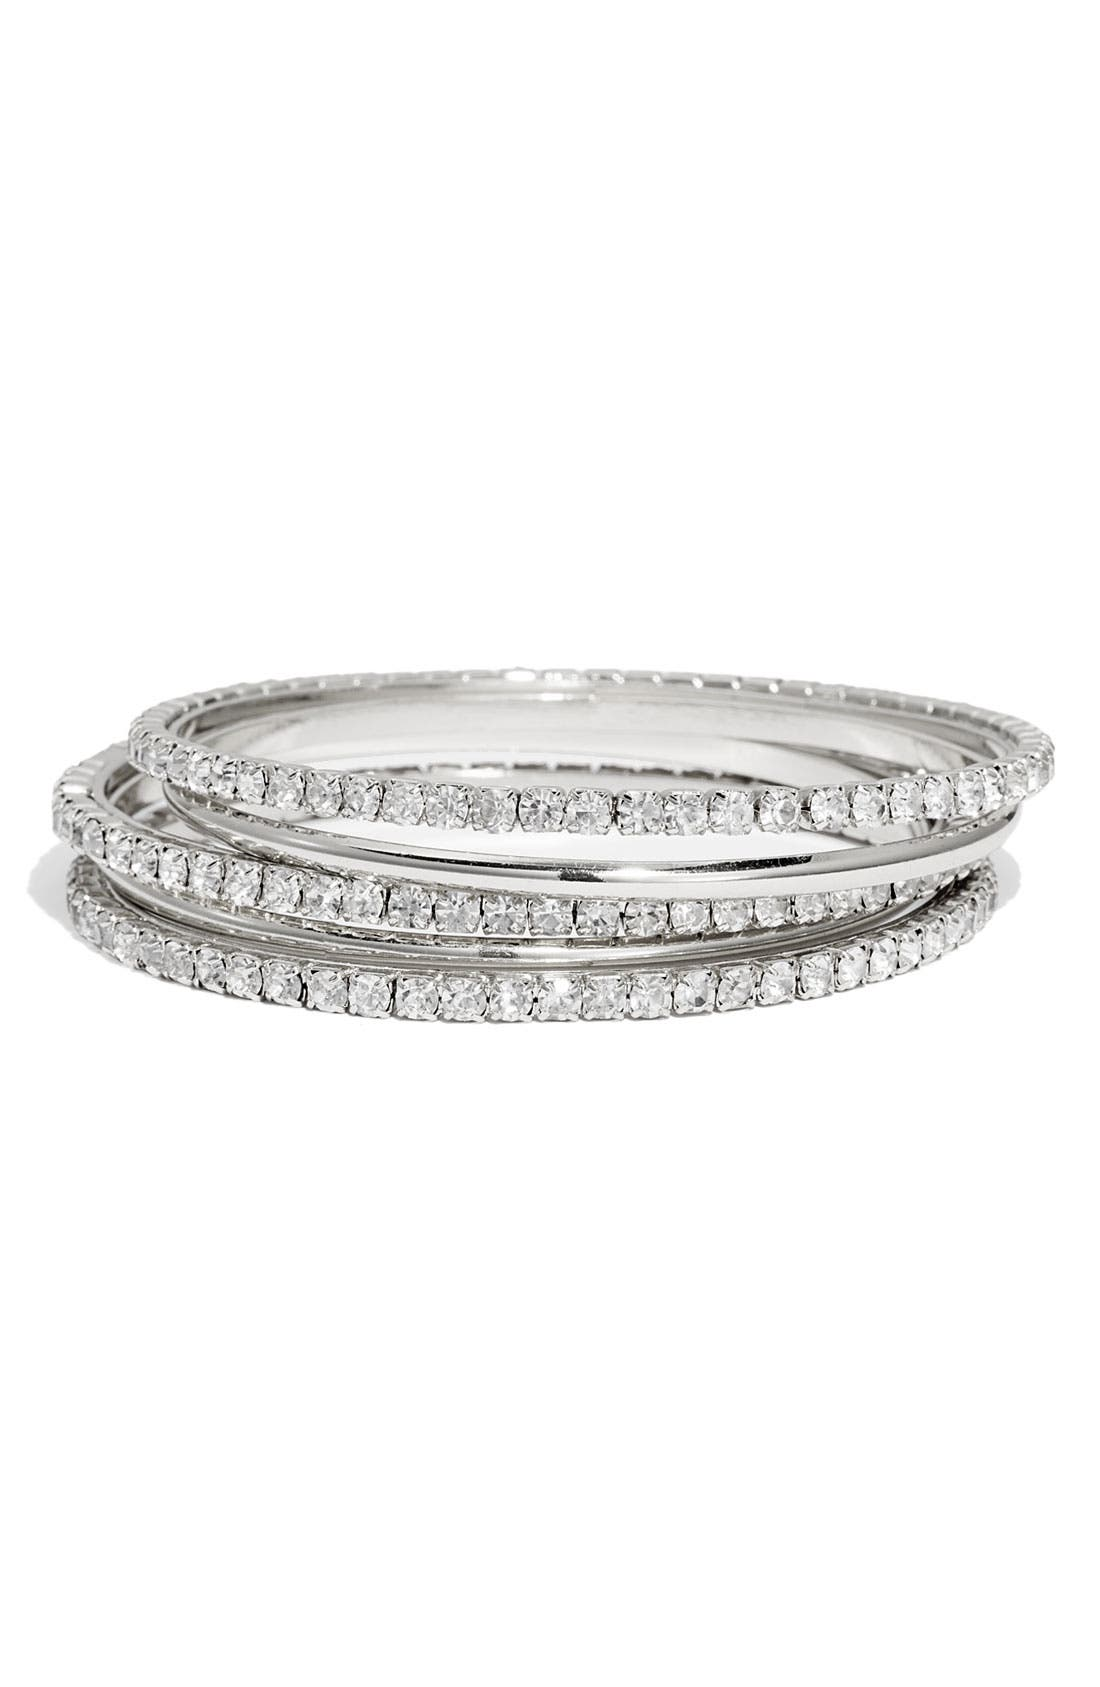 Alternate Image 1 Selected - Nordstrom Crystal & Smooth Bangles (Set of 5)